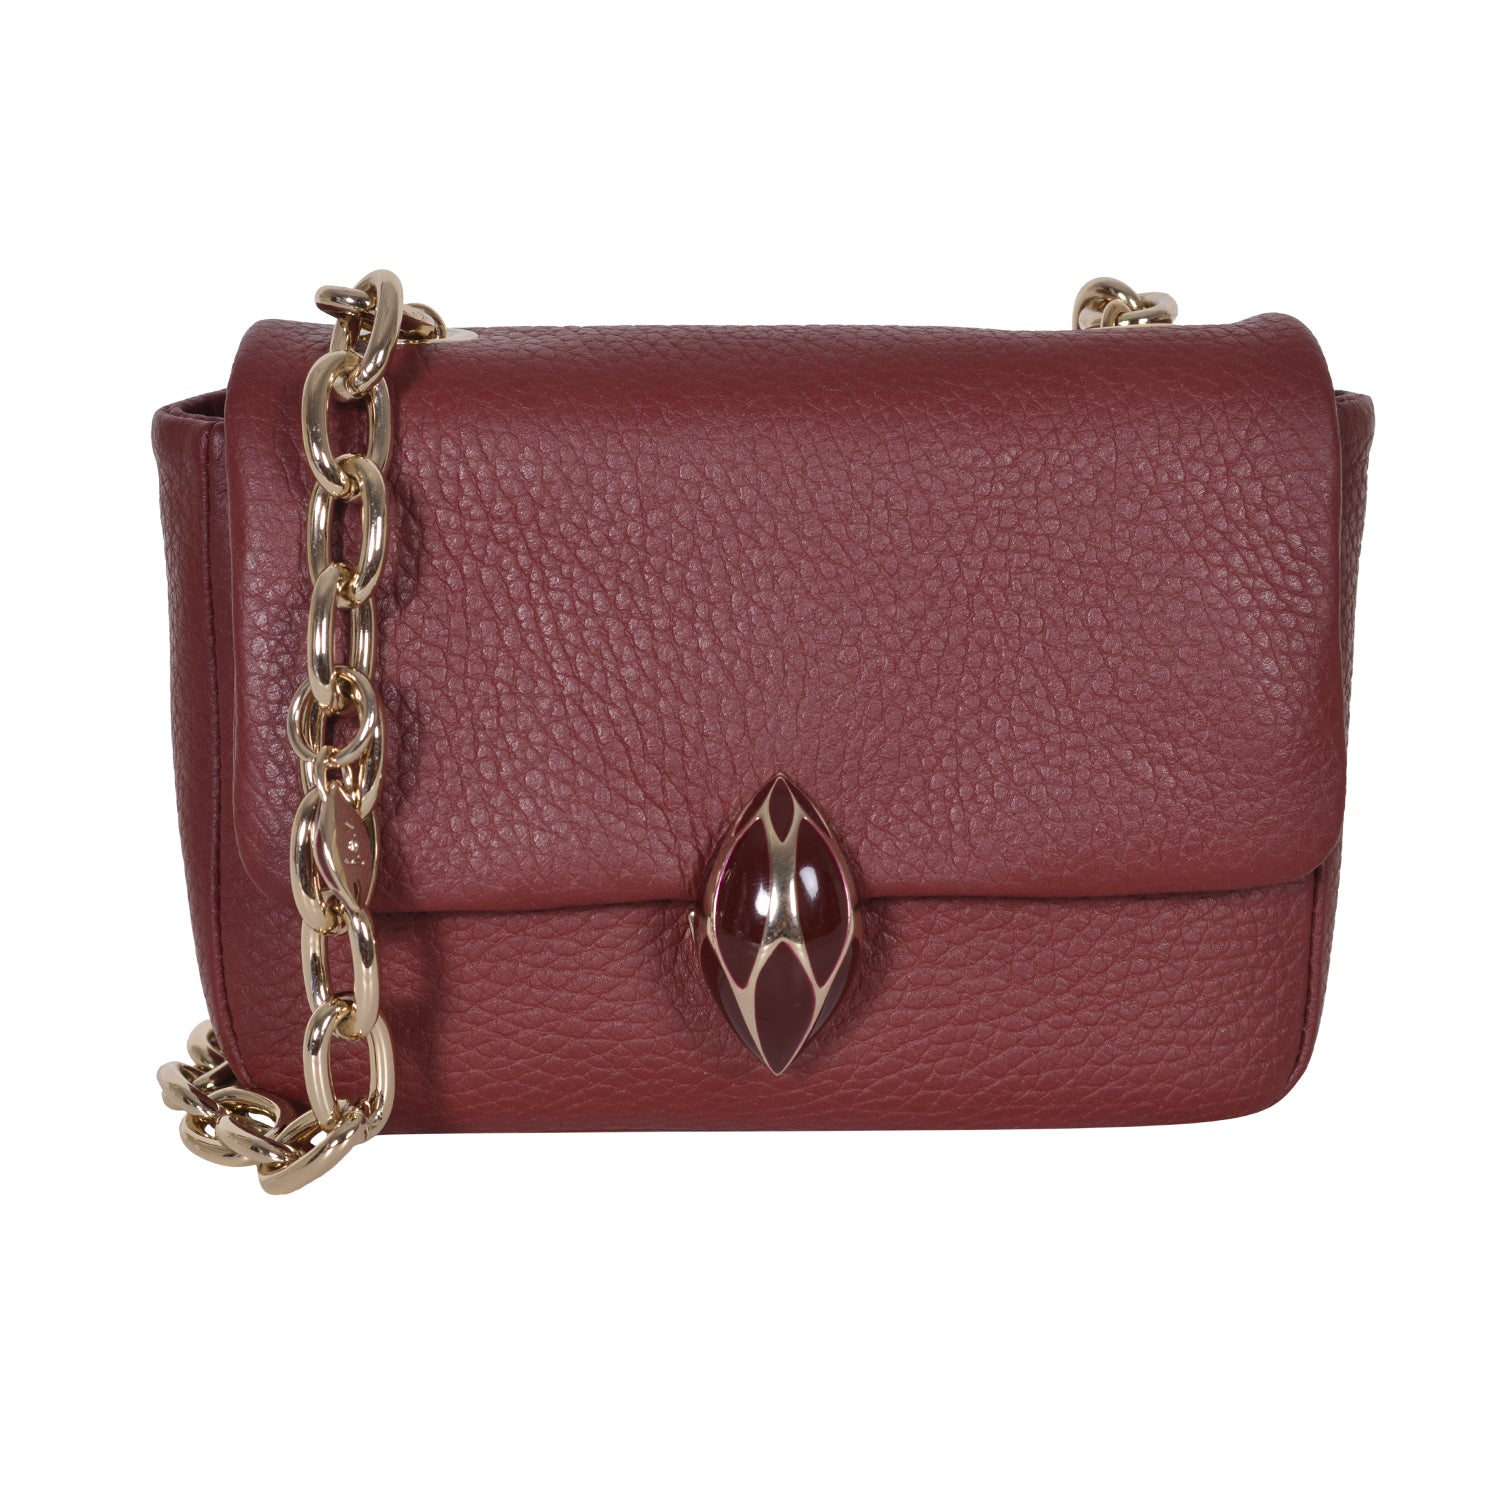 F.E.V BORDEAUX MINI LEATHER BELT BAG